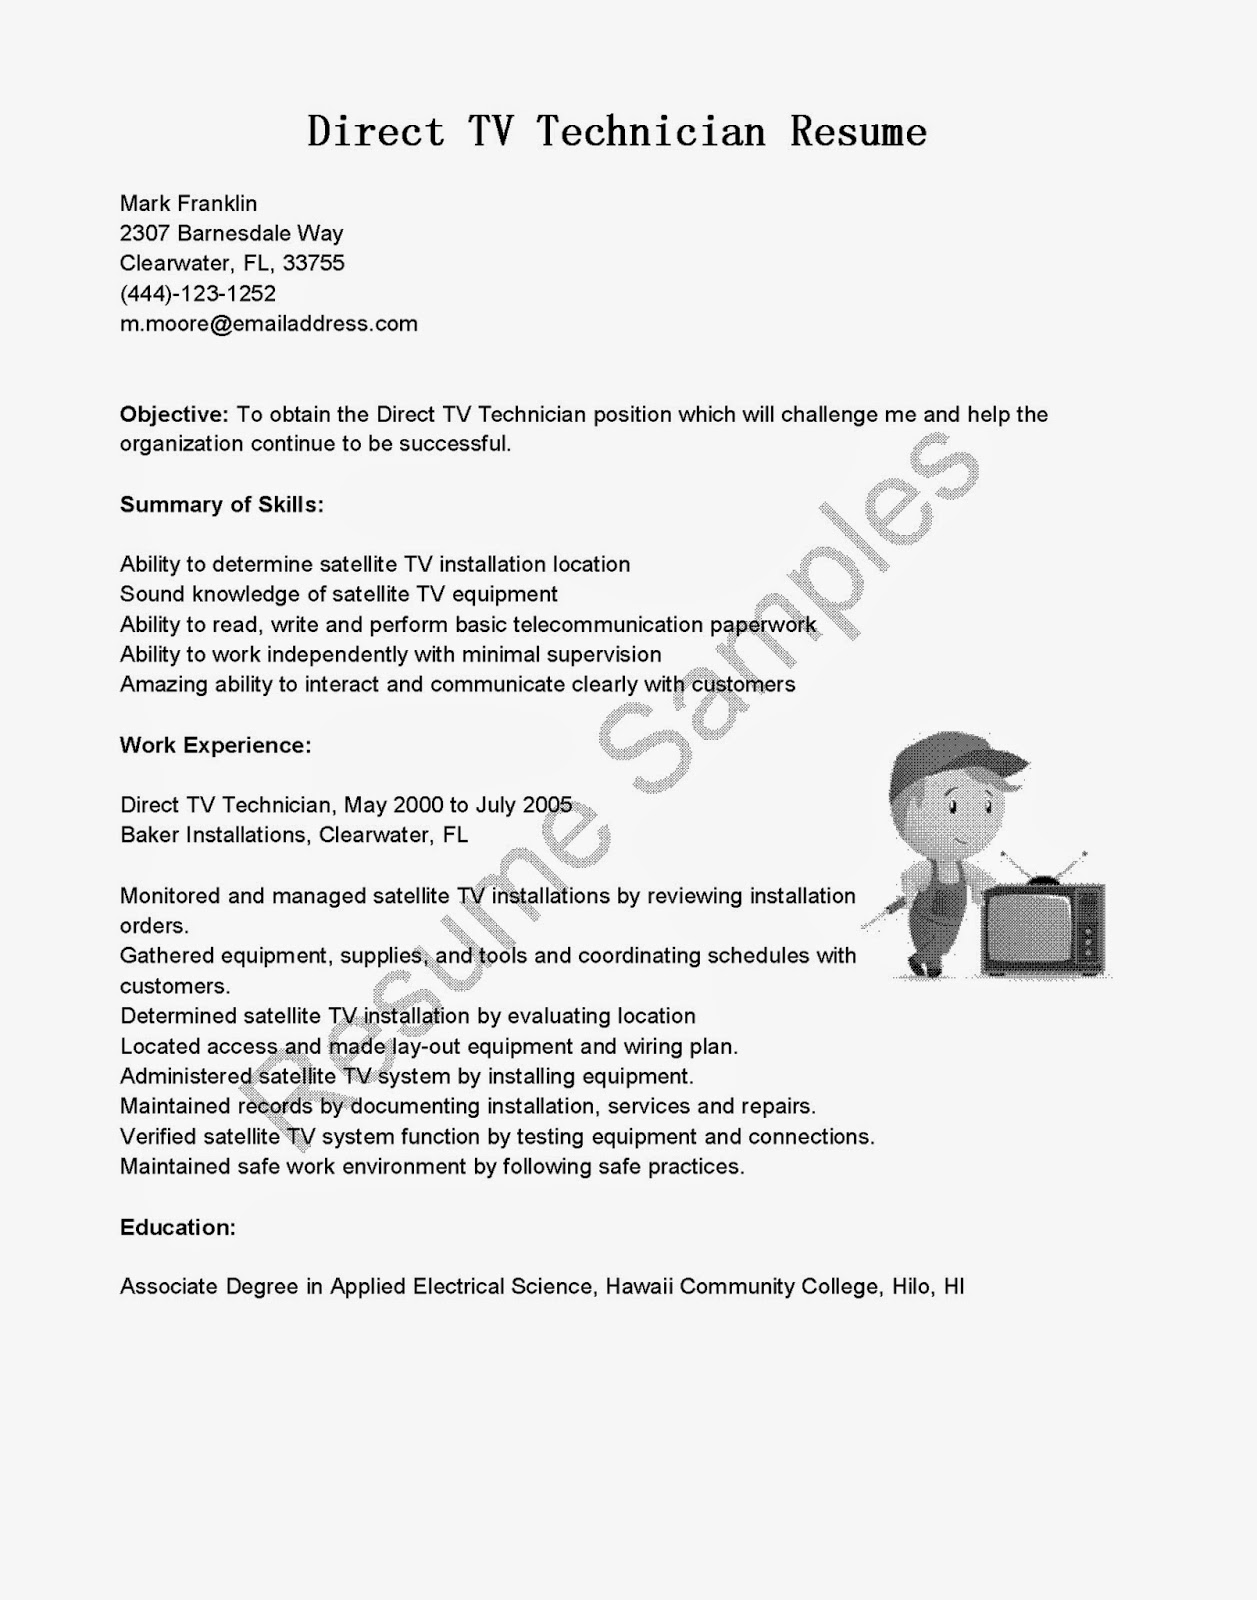 Sanitation Worker Resume Resume Samples Direct Tv Technician Resume Sample